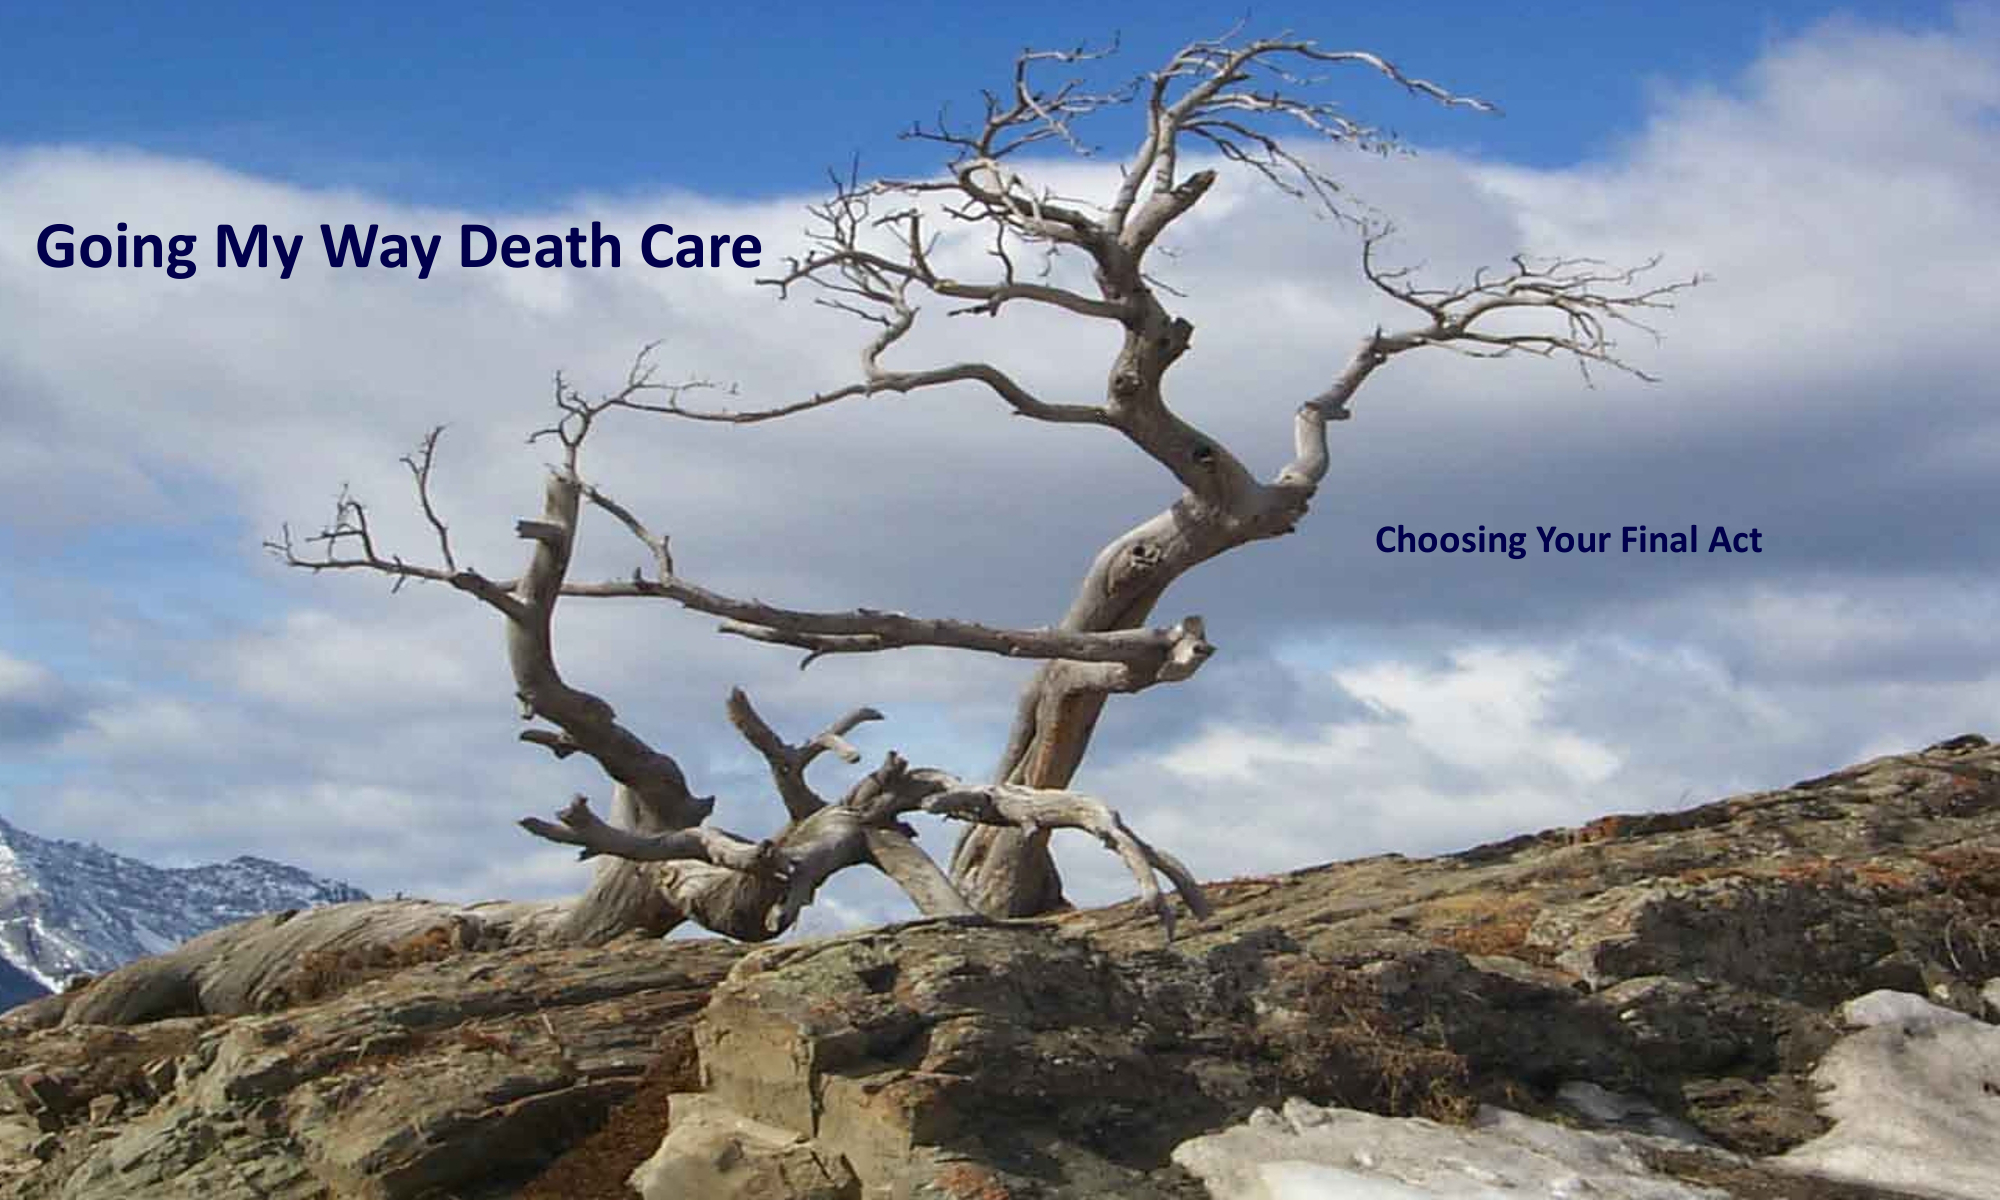 Going My Way Death Care